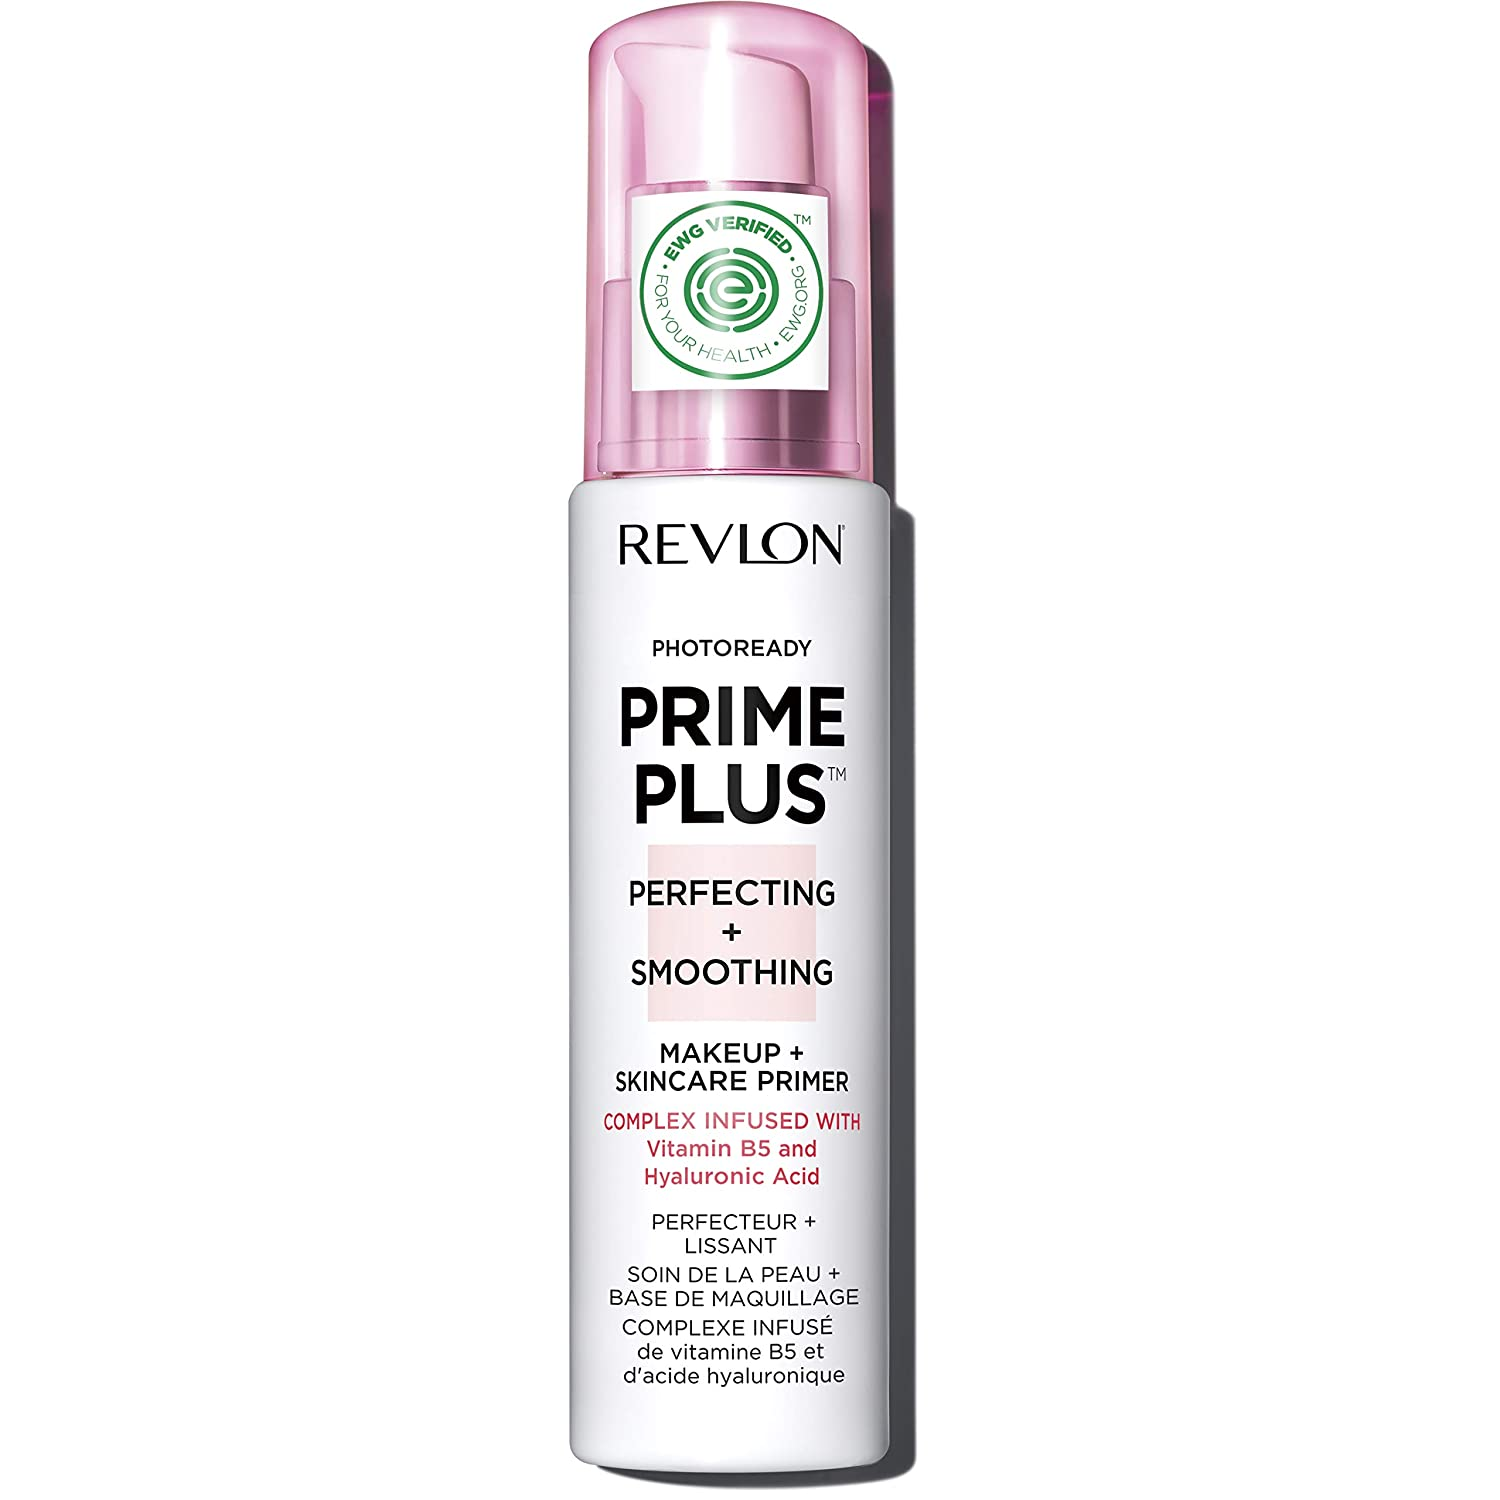 Revlon PhotoReady Prime Plus Perfecting + Smoothing